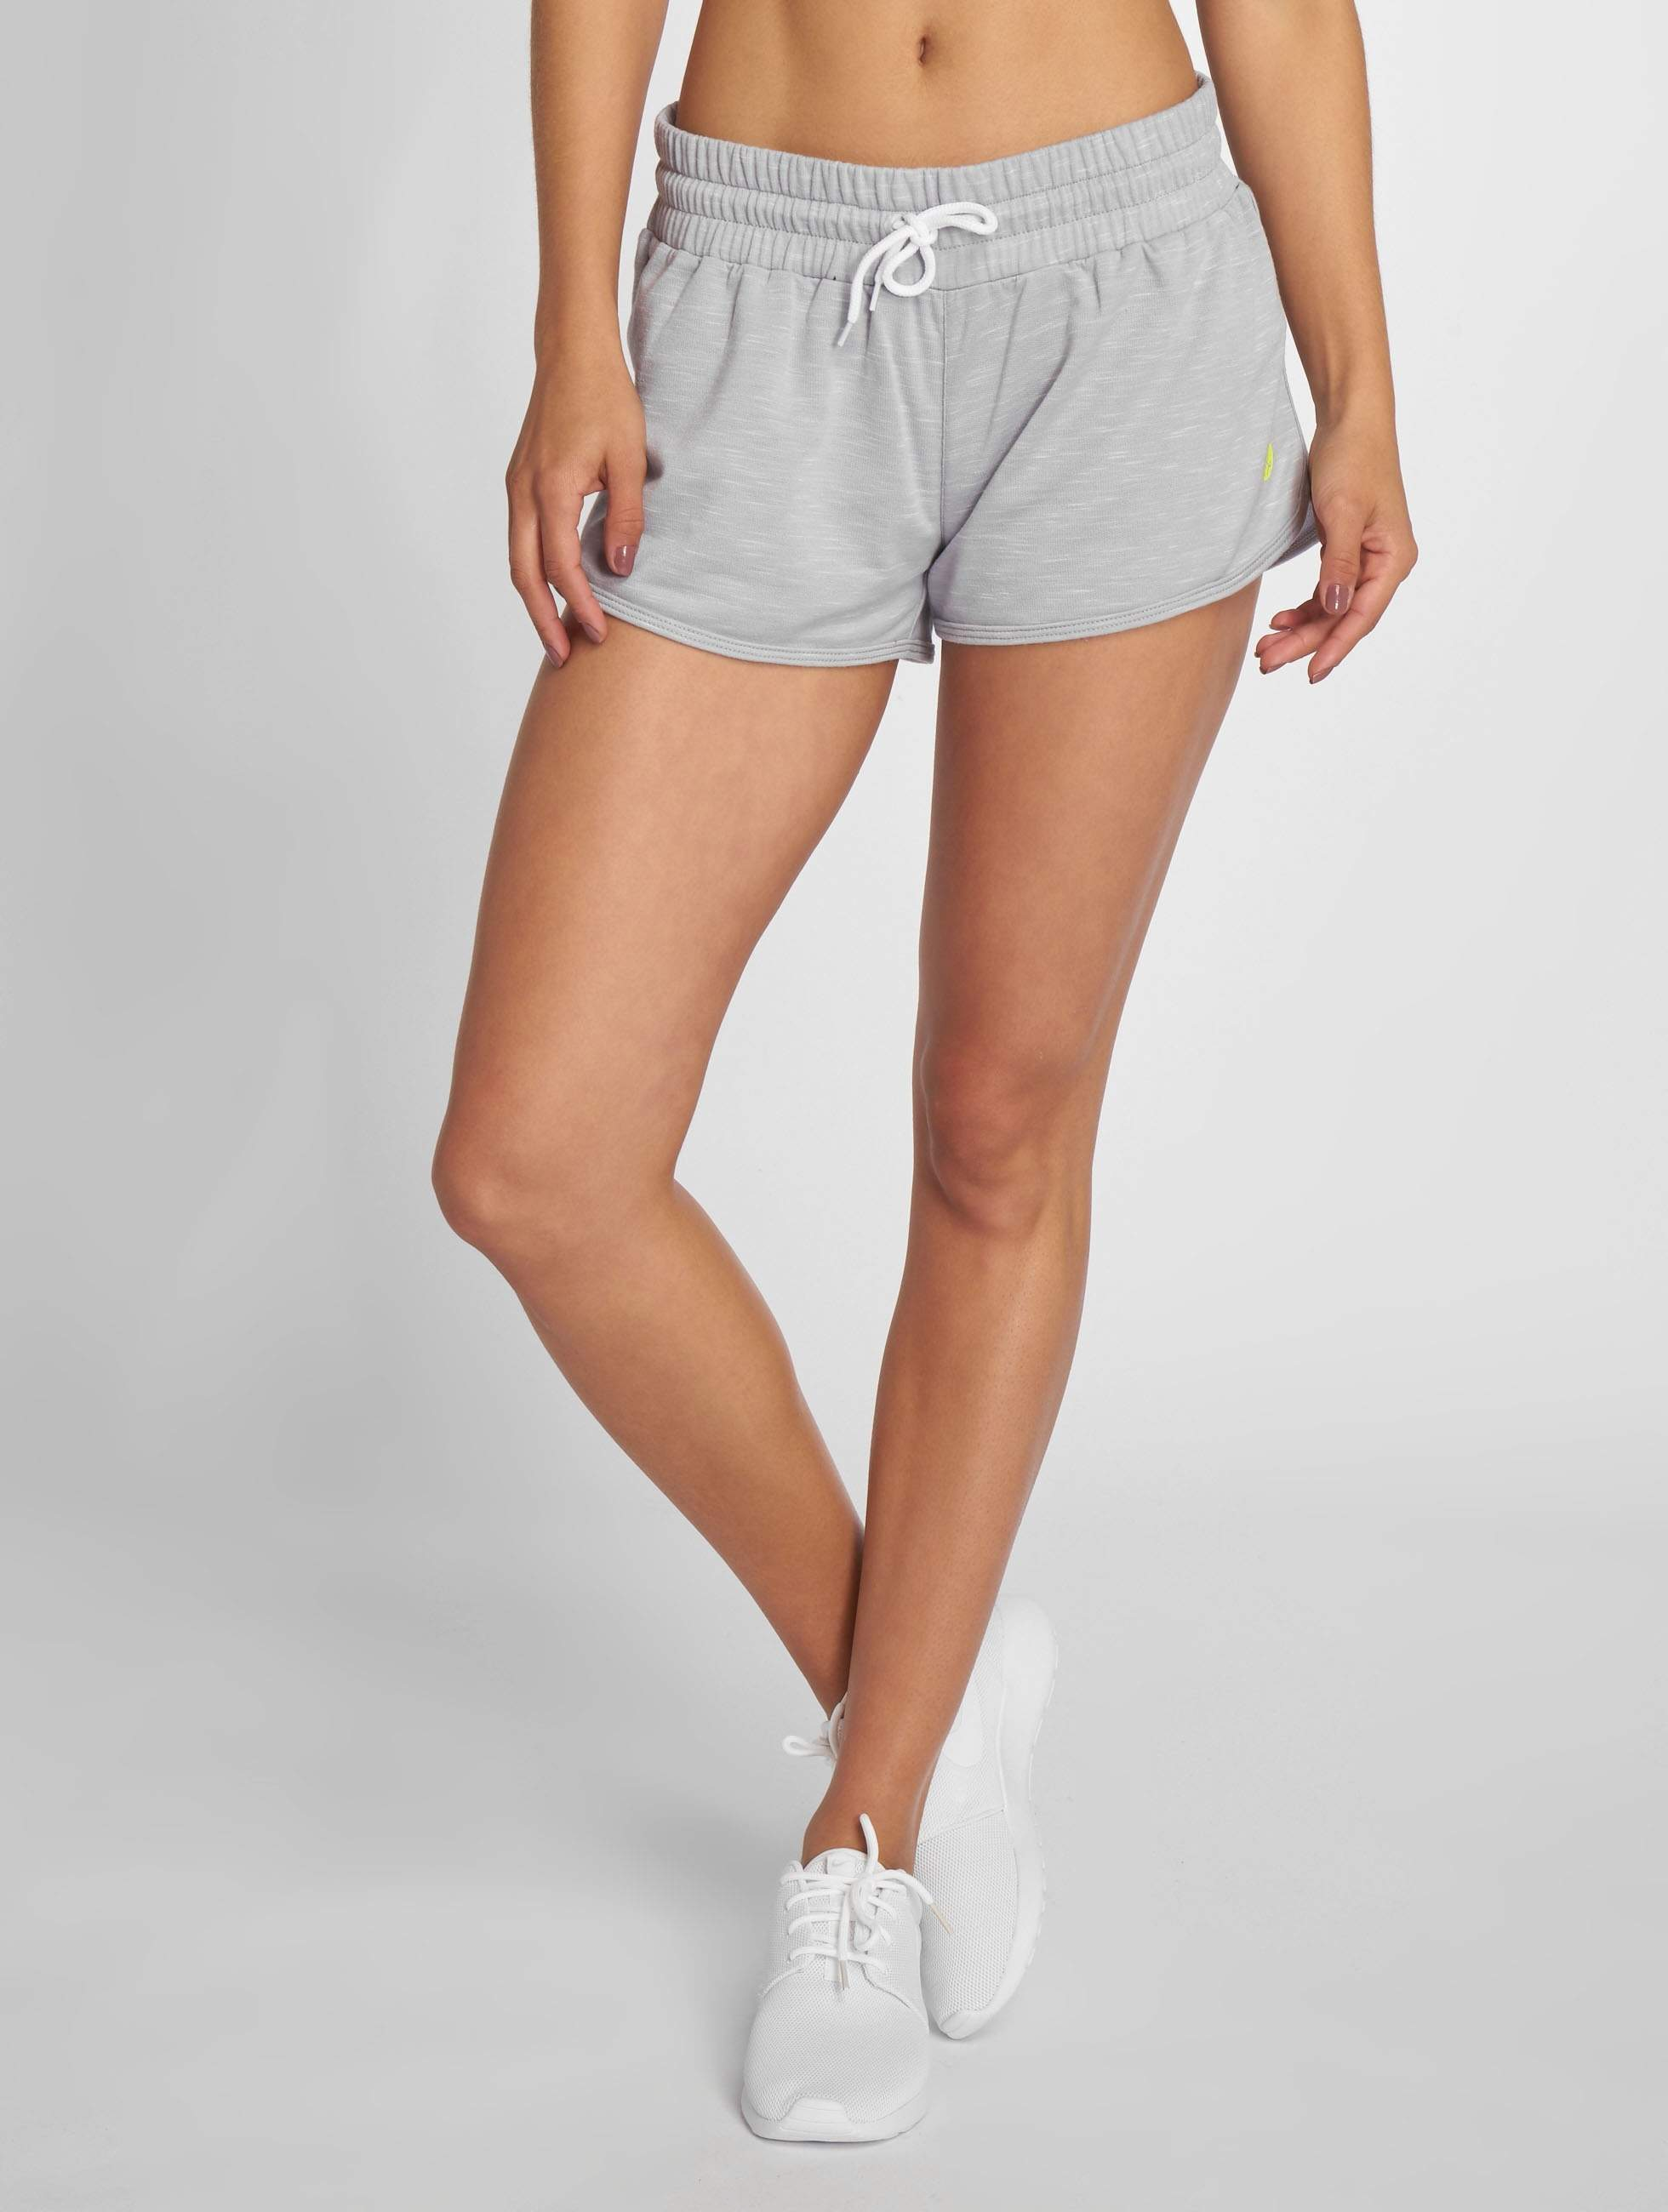 Just Rhyse / Short Kaihiku Active in grey XS